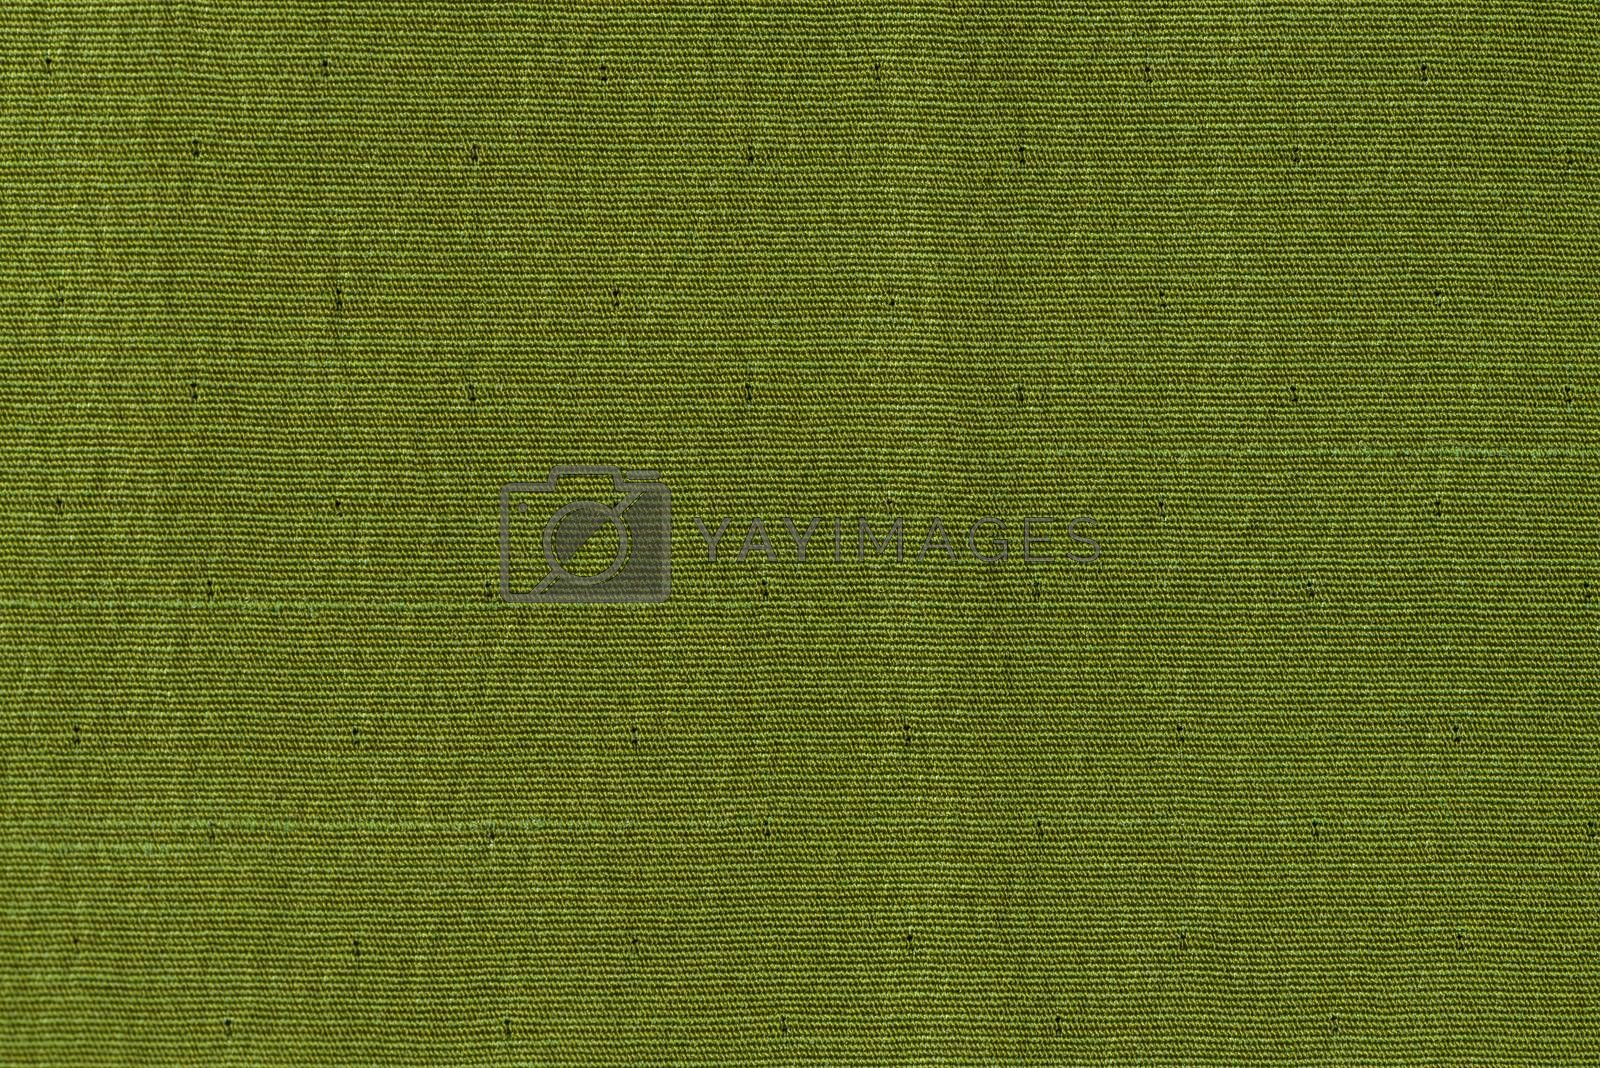 Green fabric texture by homydesign